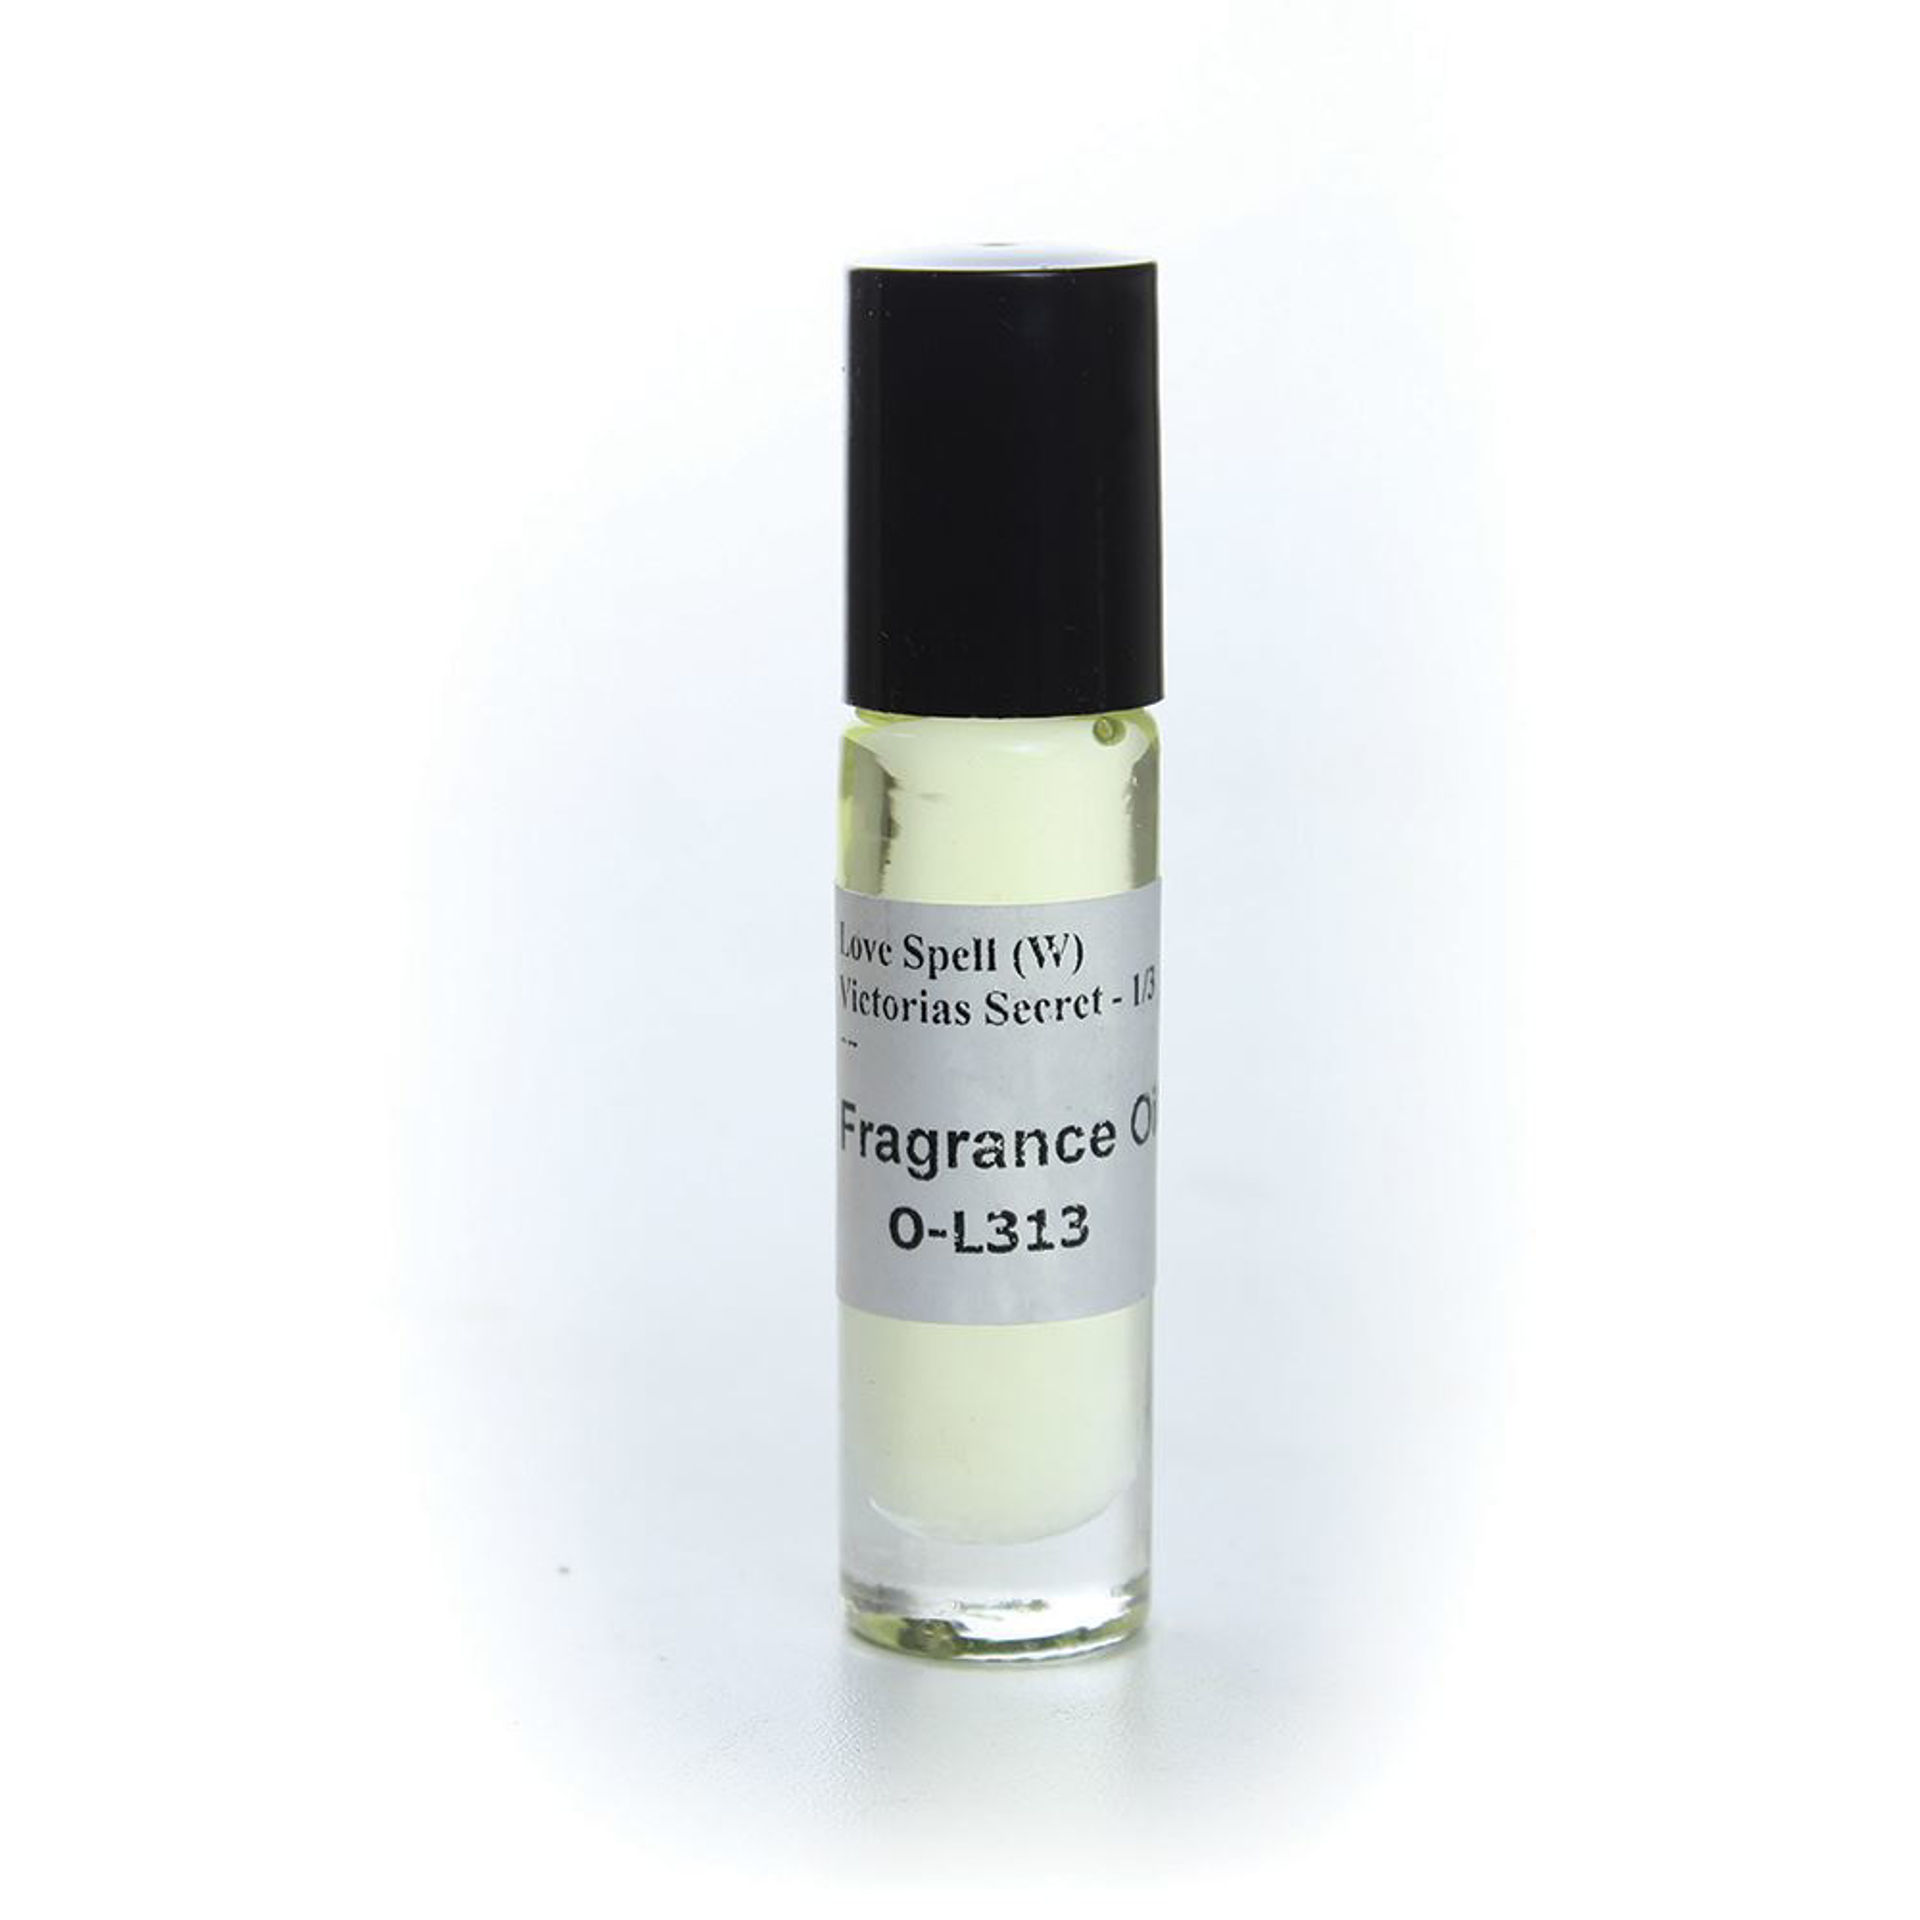 Picture of Love Spell (W) Victorias Secret - 1/3 oz